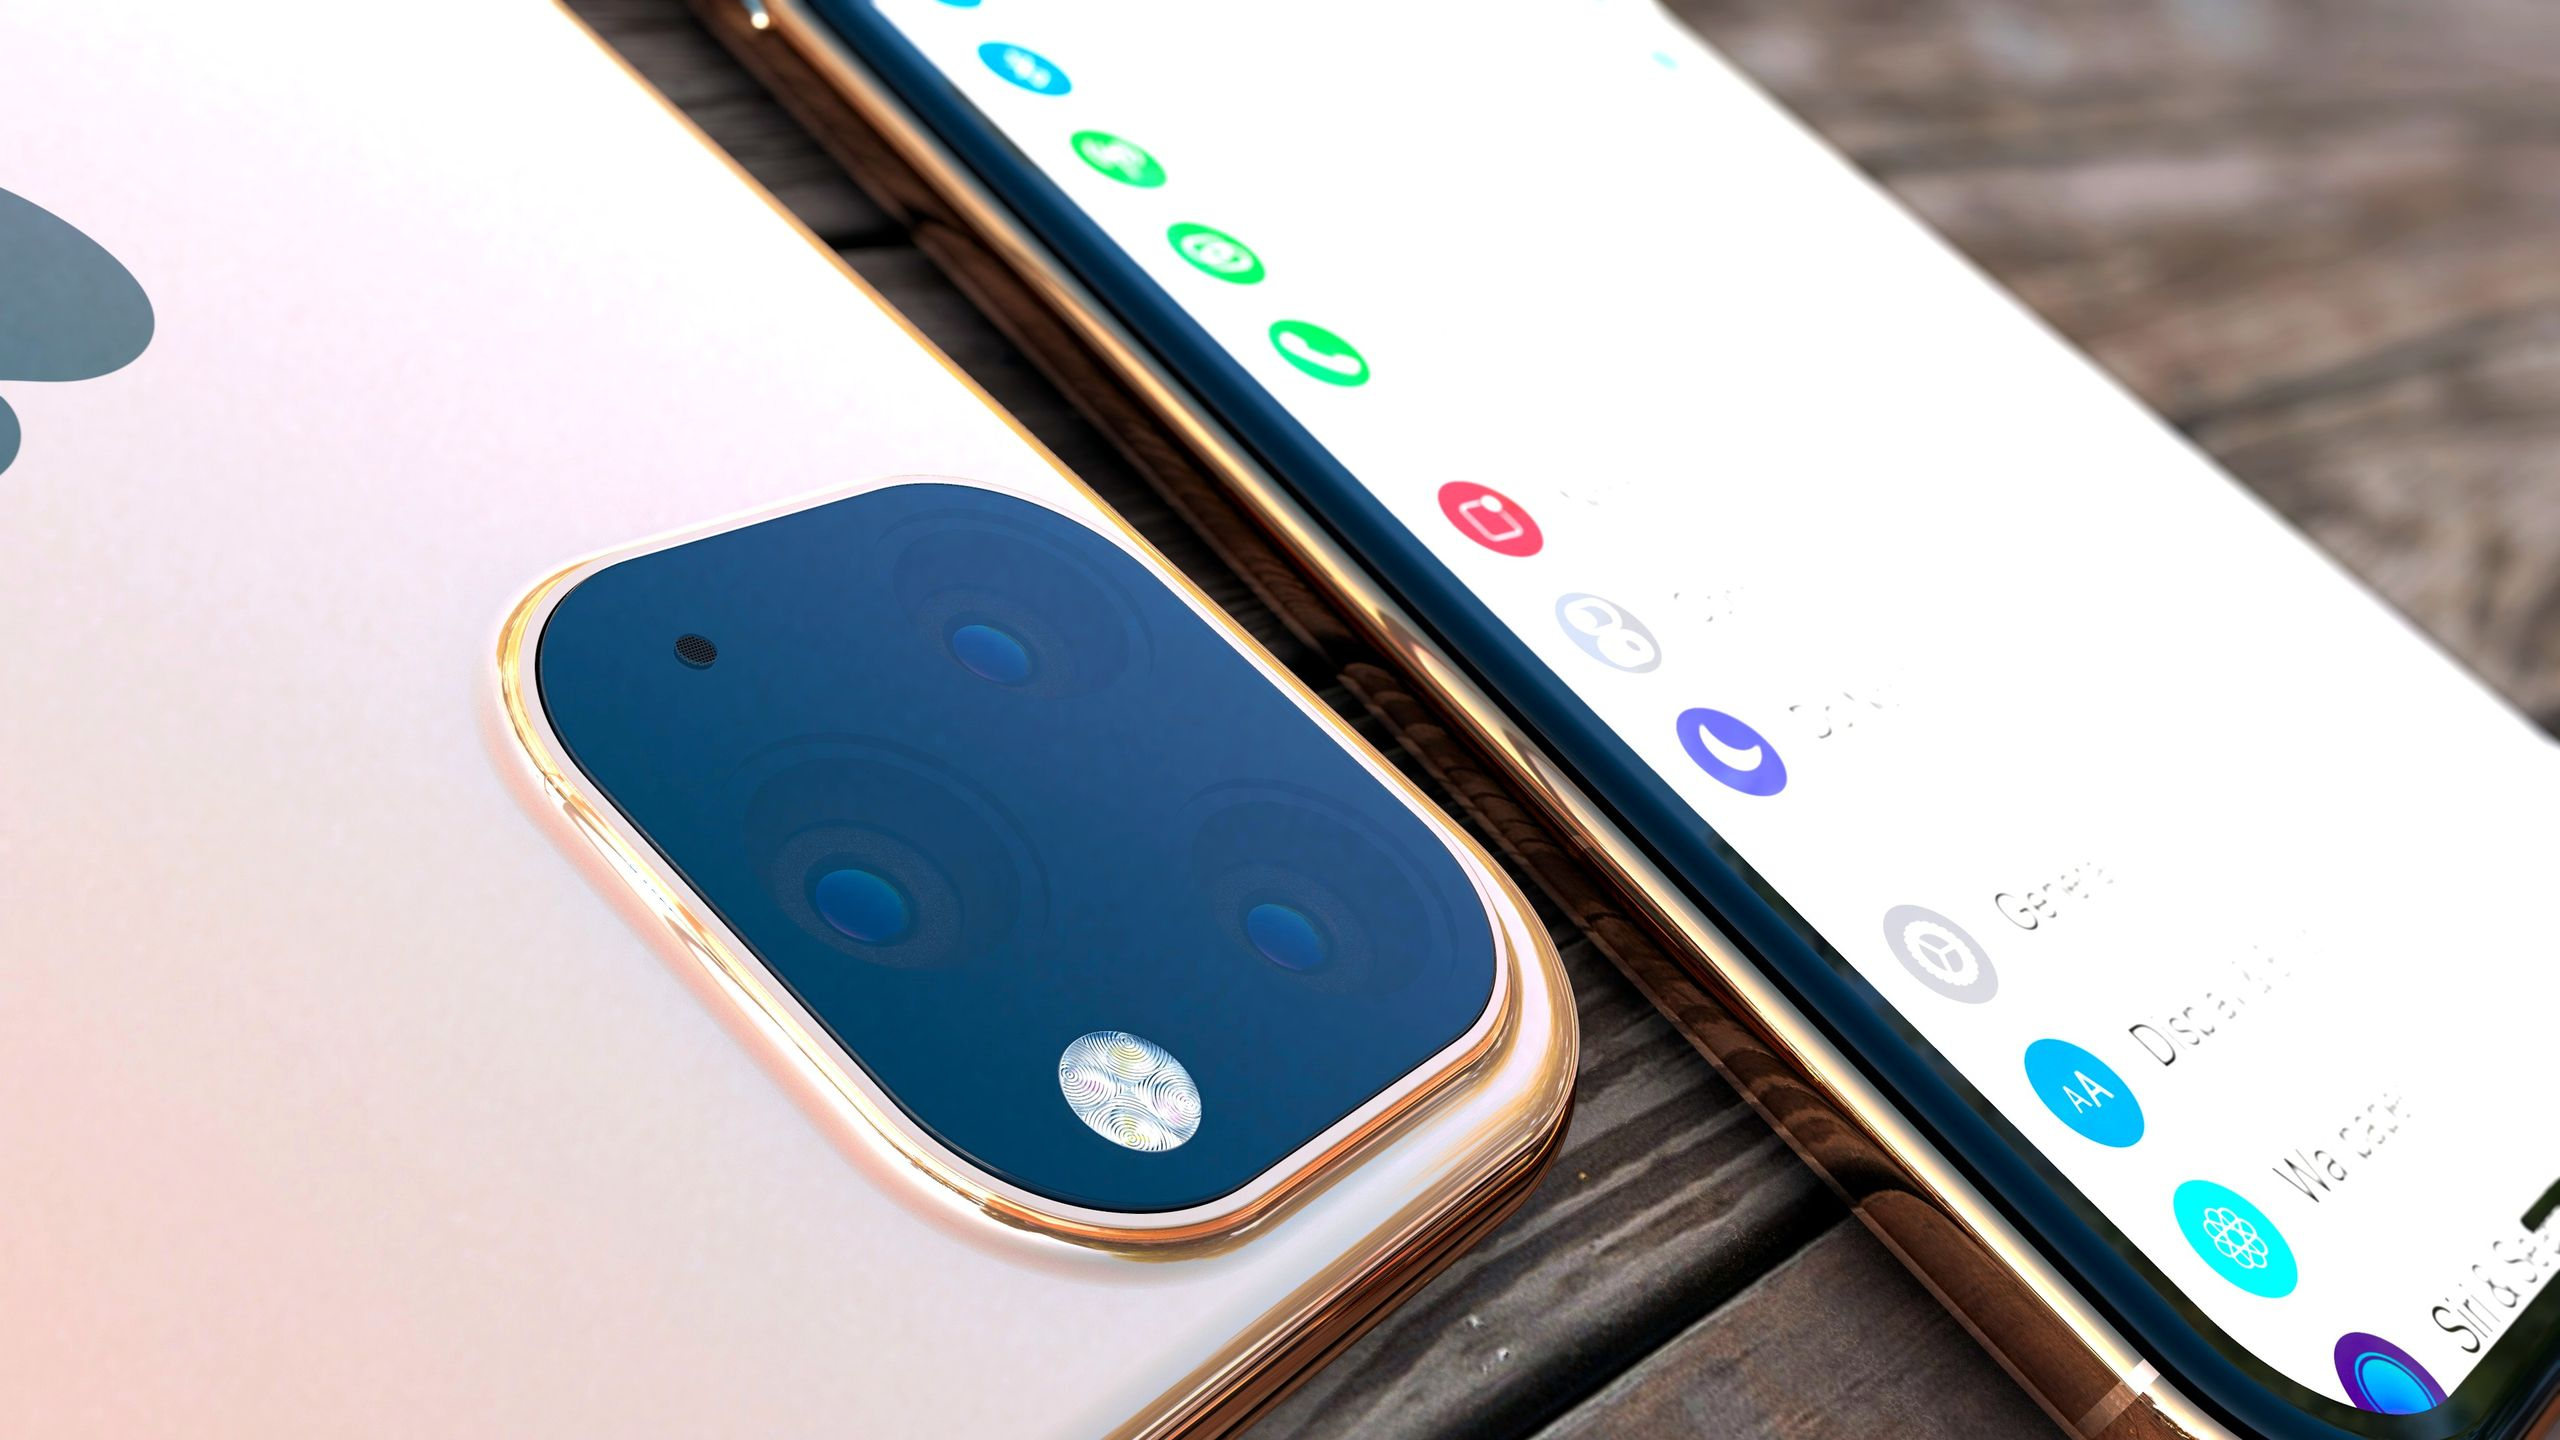 Iphone Xi Concept Images 2019 1